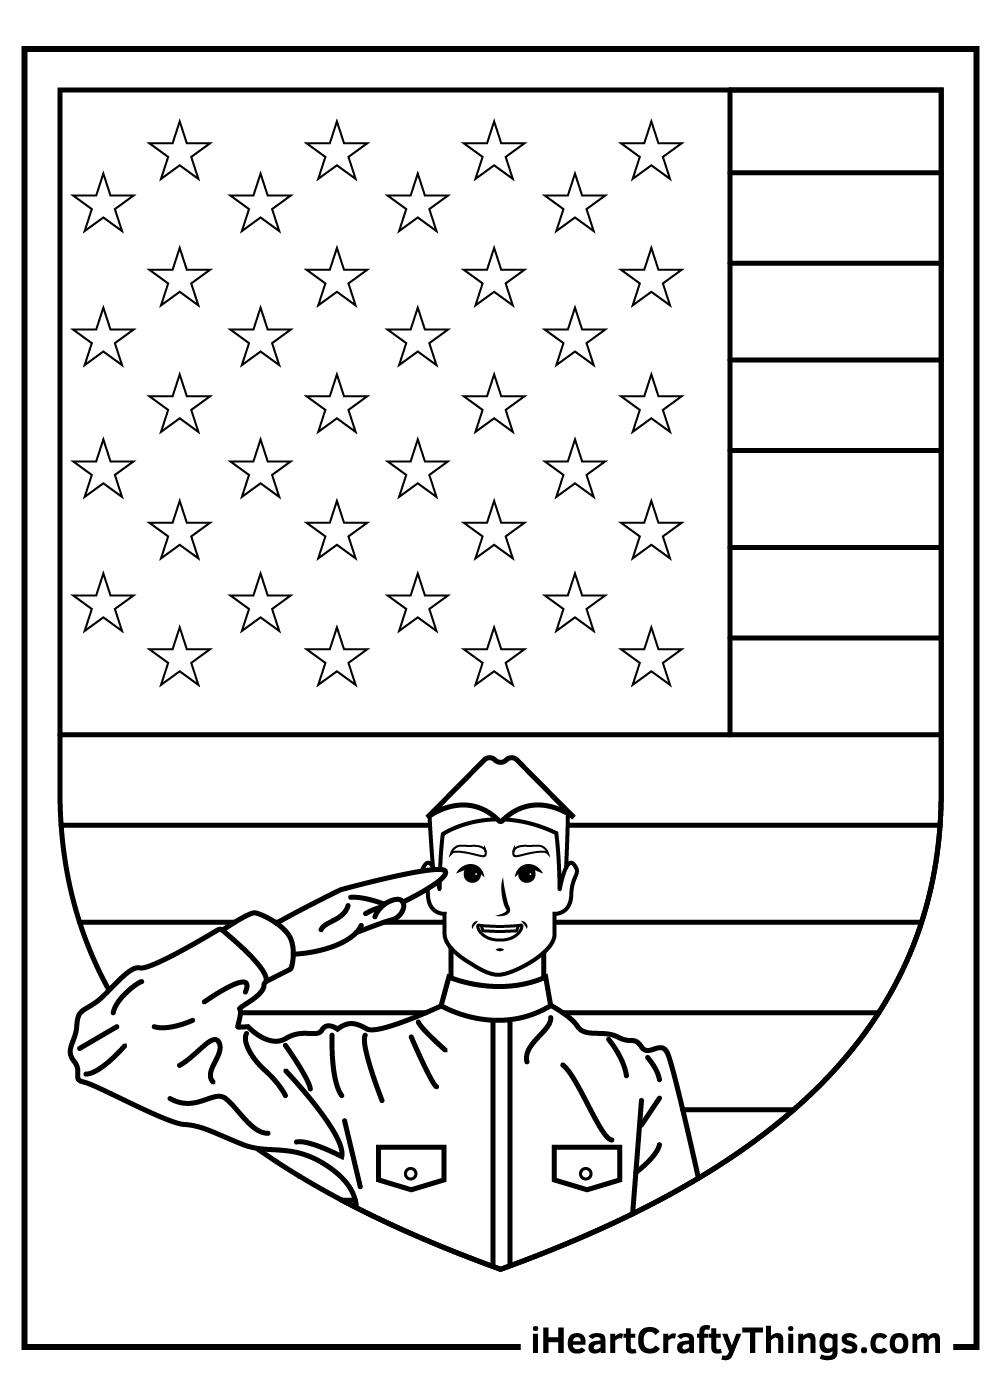 Celebrating Veteran's Day Coloring Pages for Adults